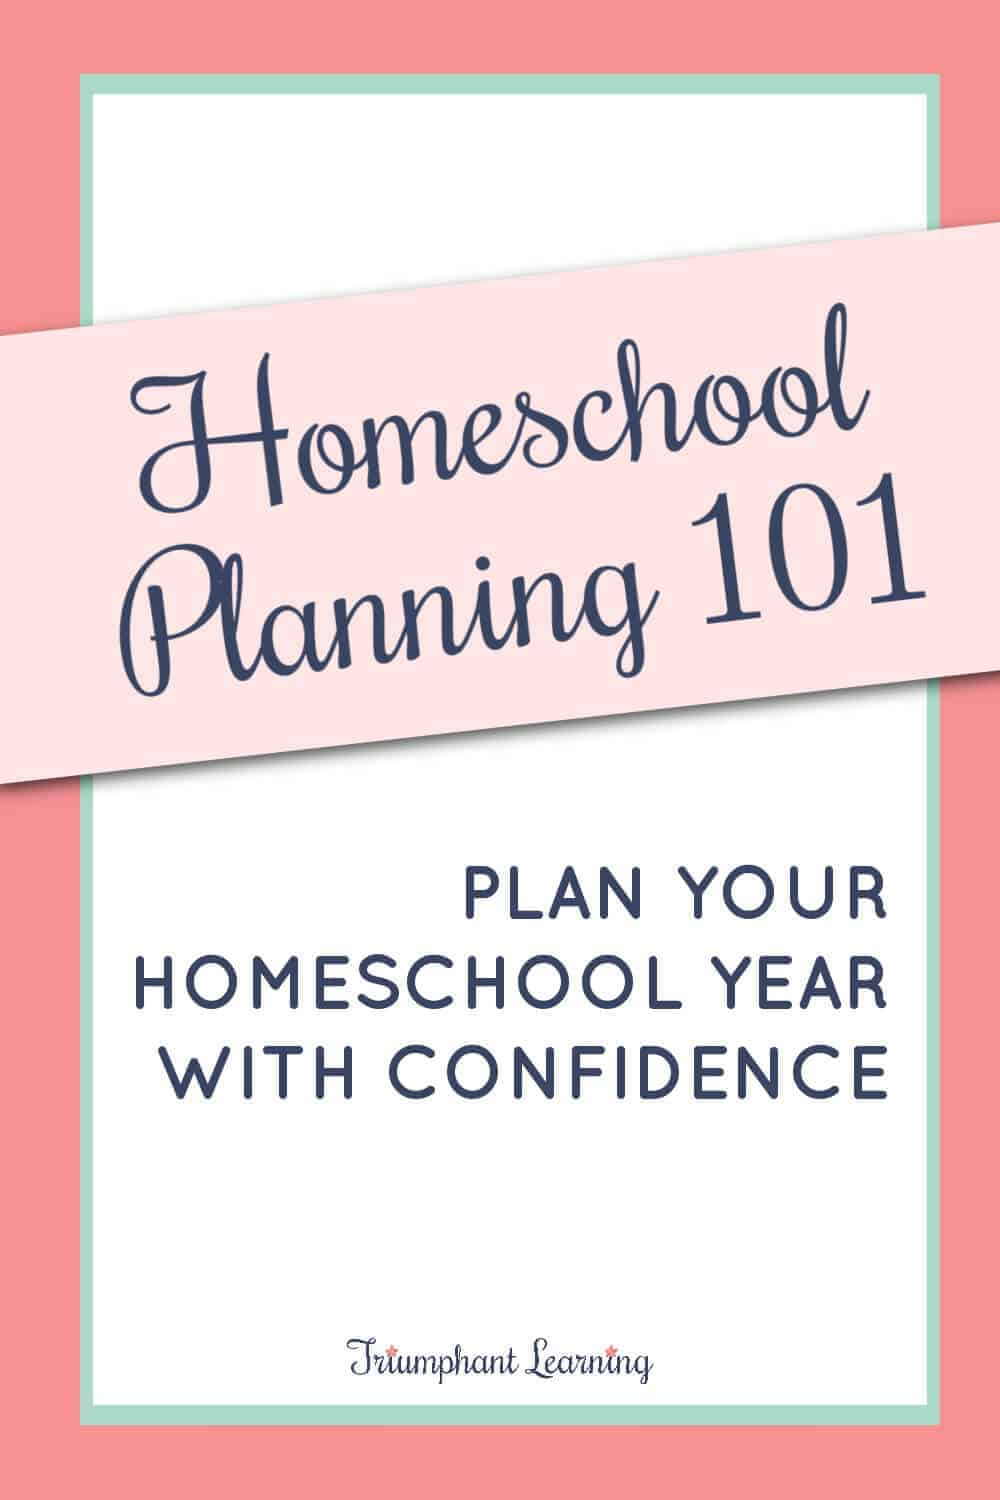 Learn the six simple steps to simplify homeschool planning so you can homeschool your children with confidence. via @TriLearning